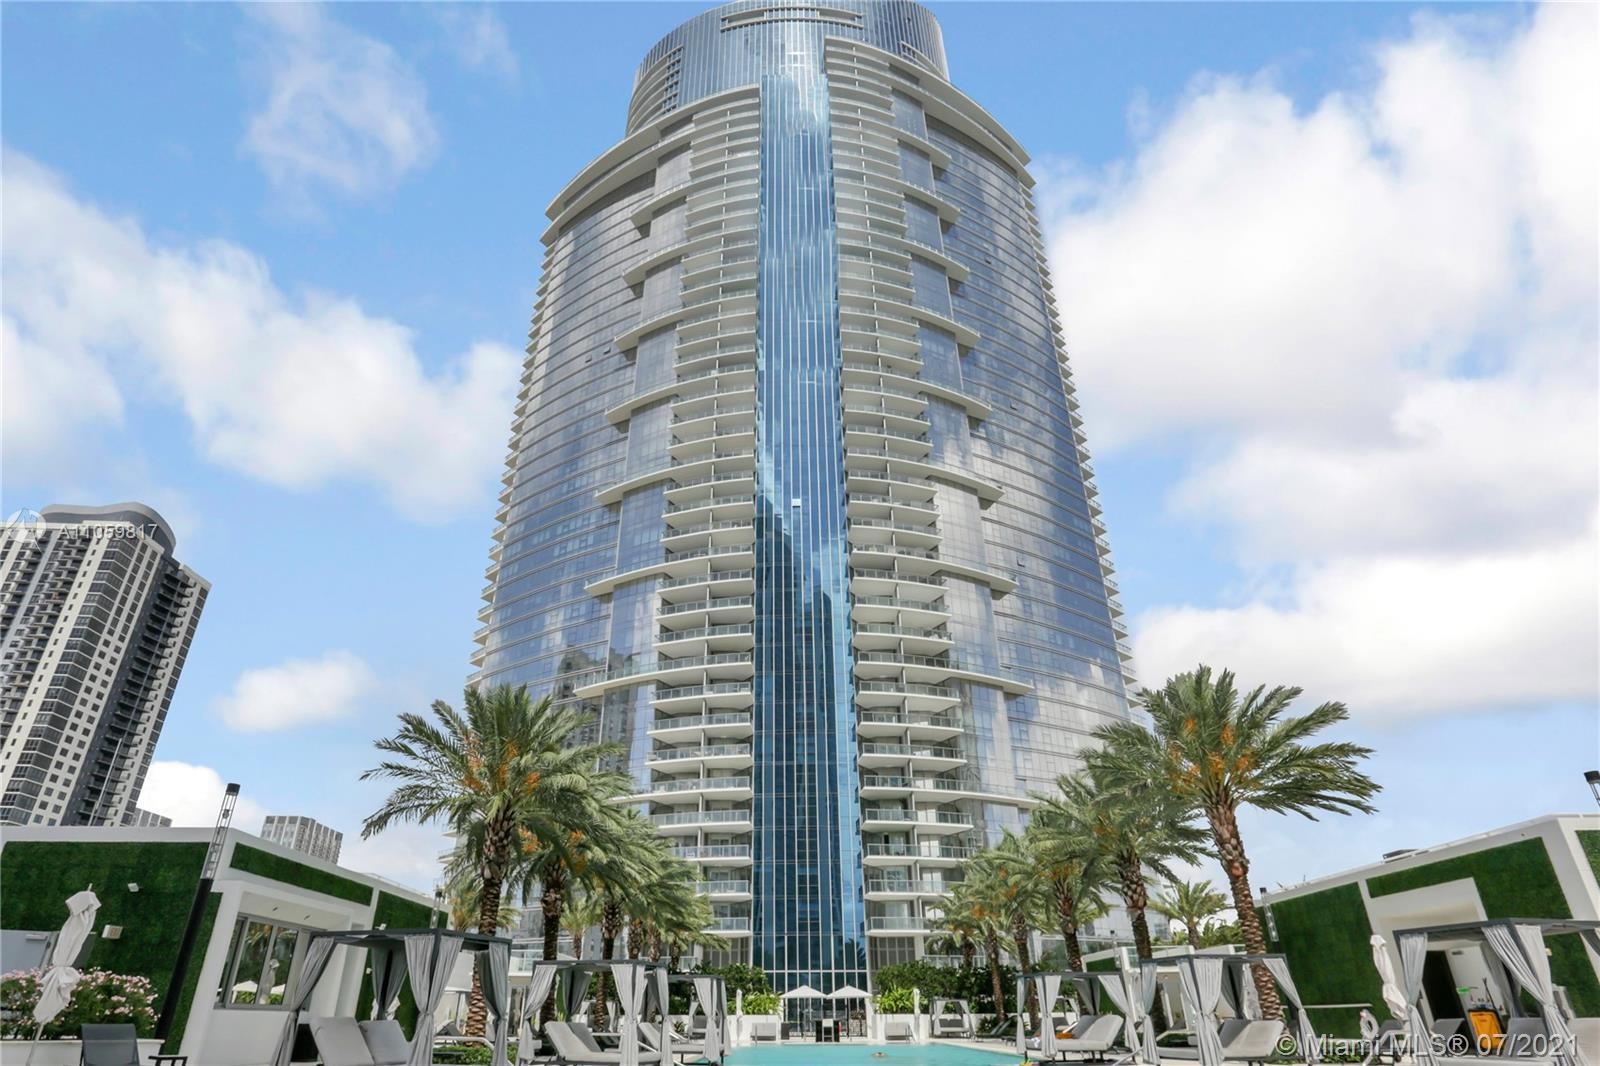 Residing in one of the most amenity rich buildings in the world, this 29th floor unit offers stunnin